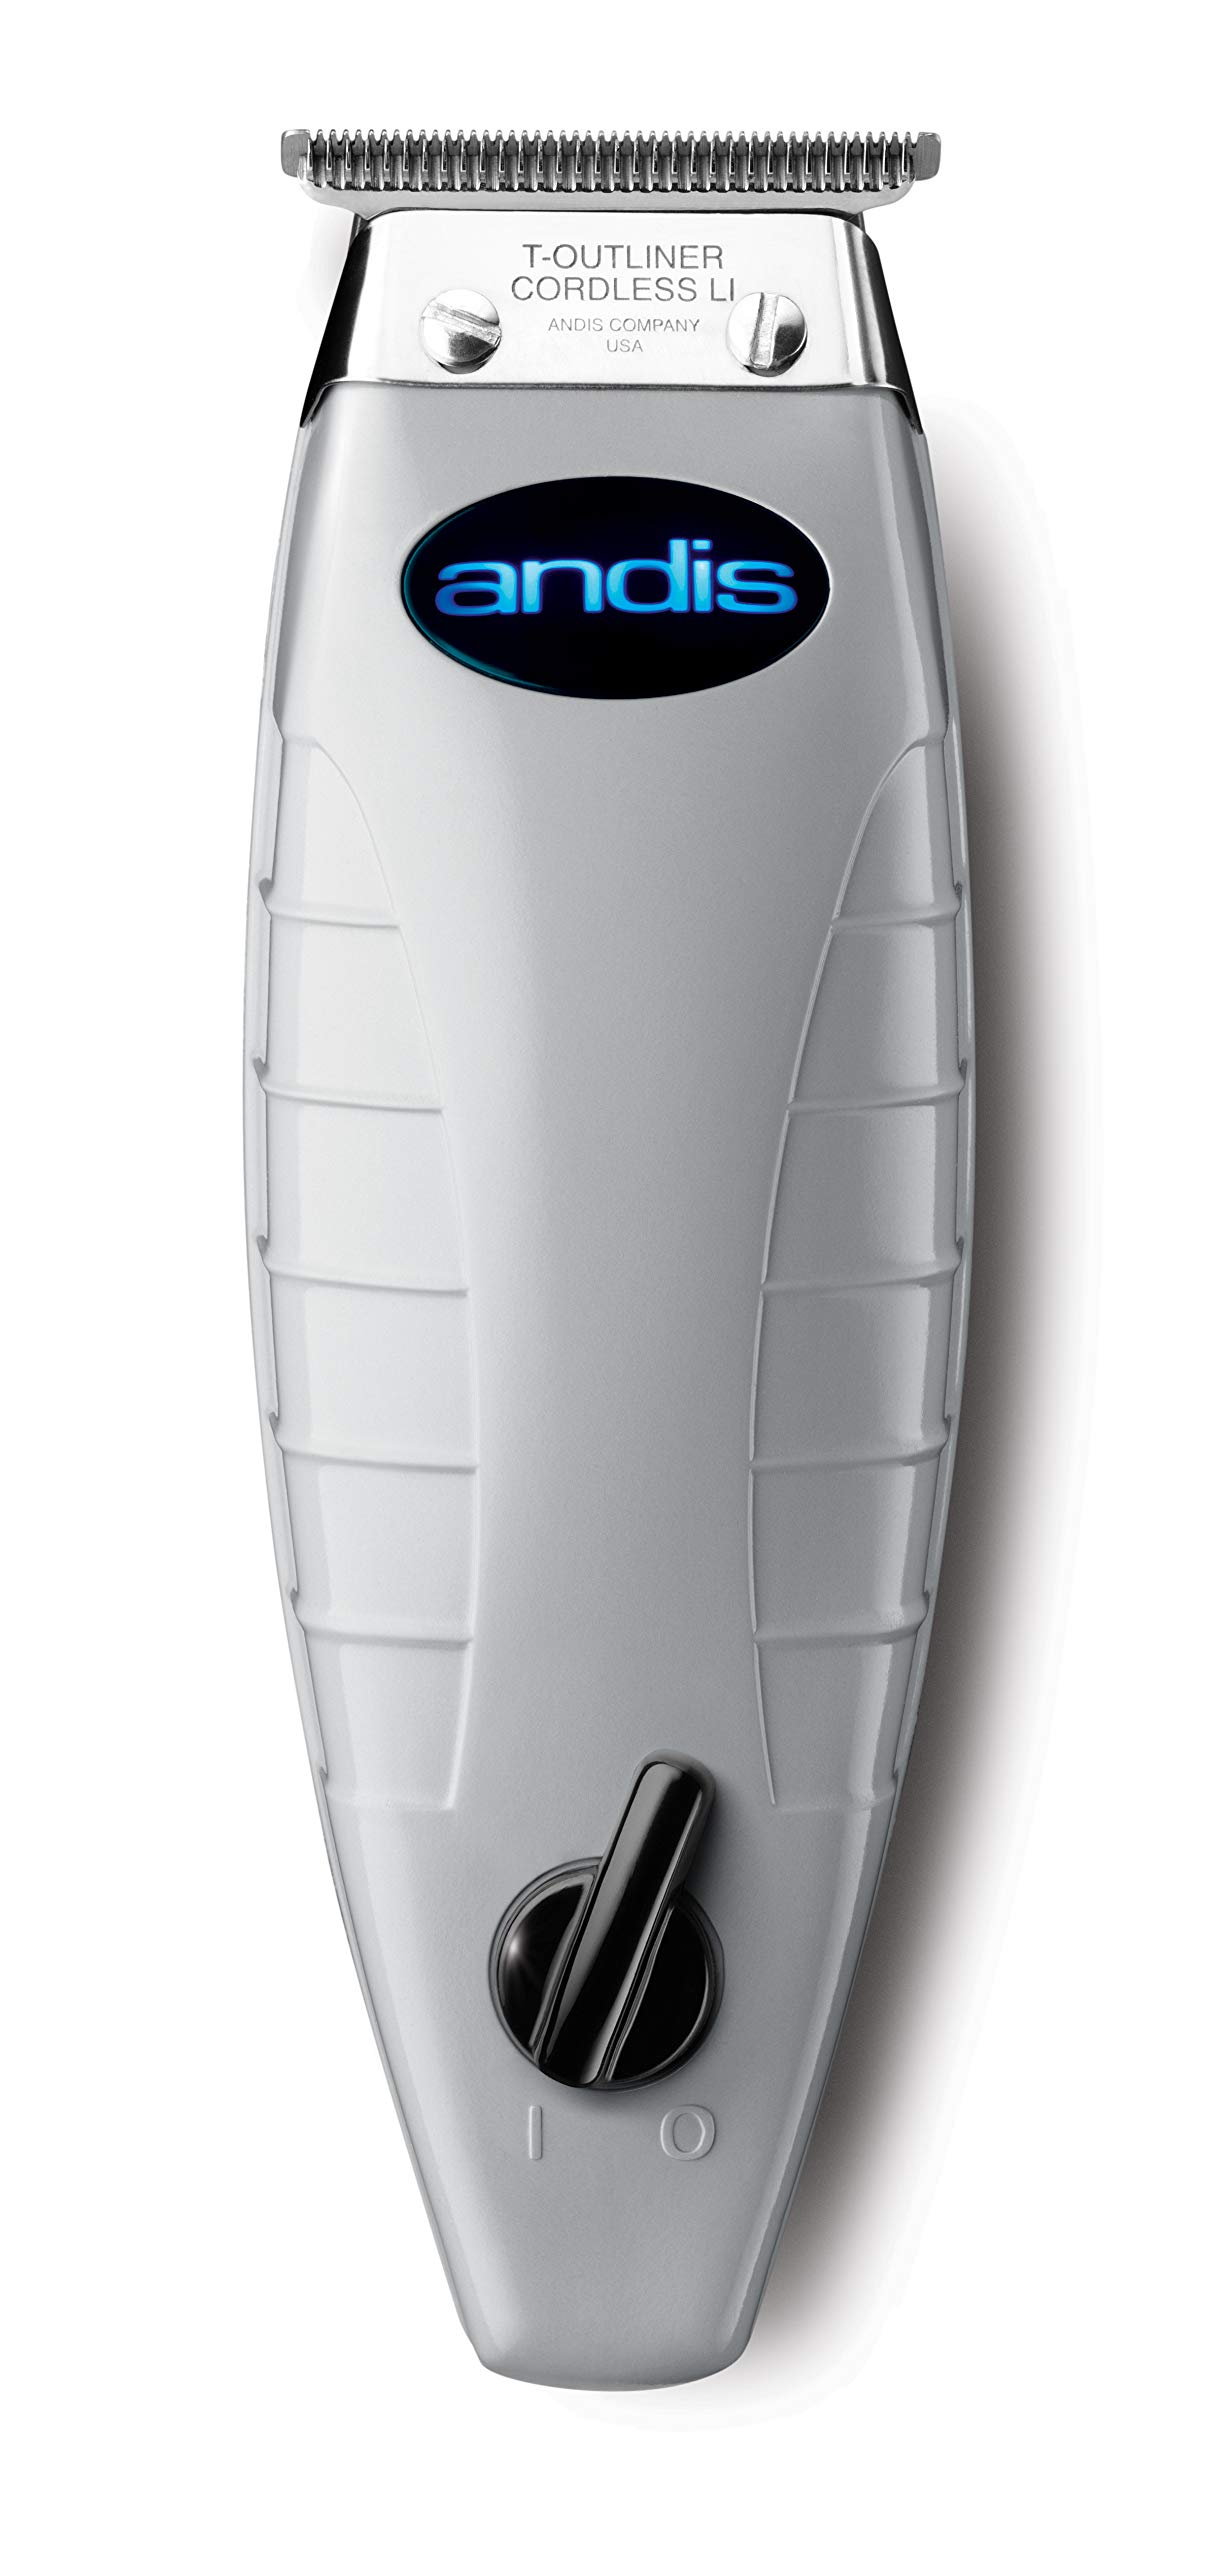 andis professional cordless t-outliner - 71AE5brds3L - Andis Professional Cordless T-Outliner Beard/Hair Trimmer, 74000